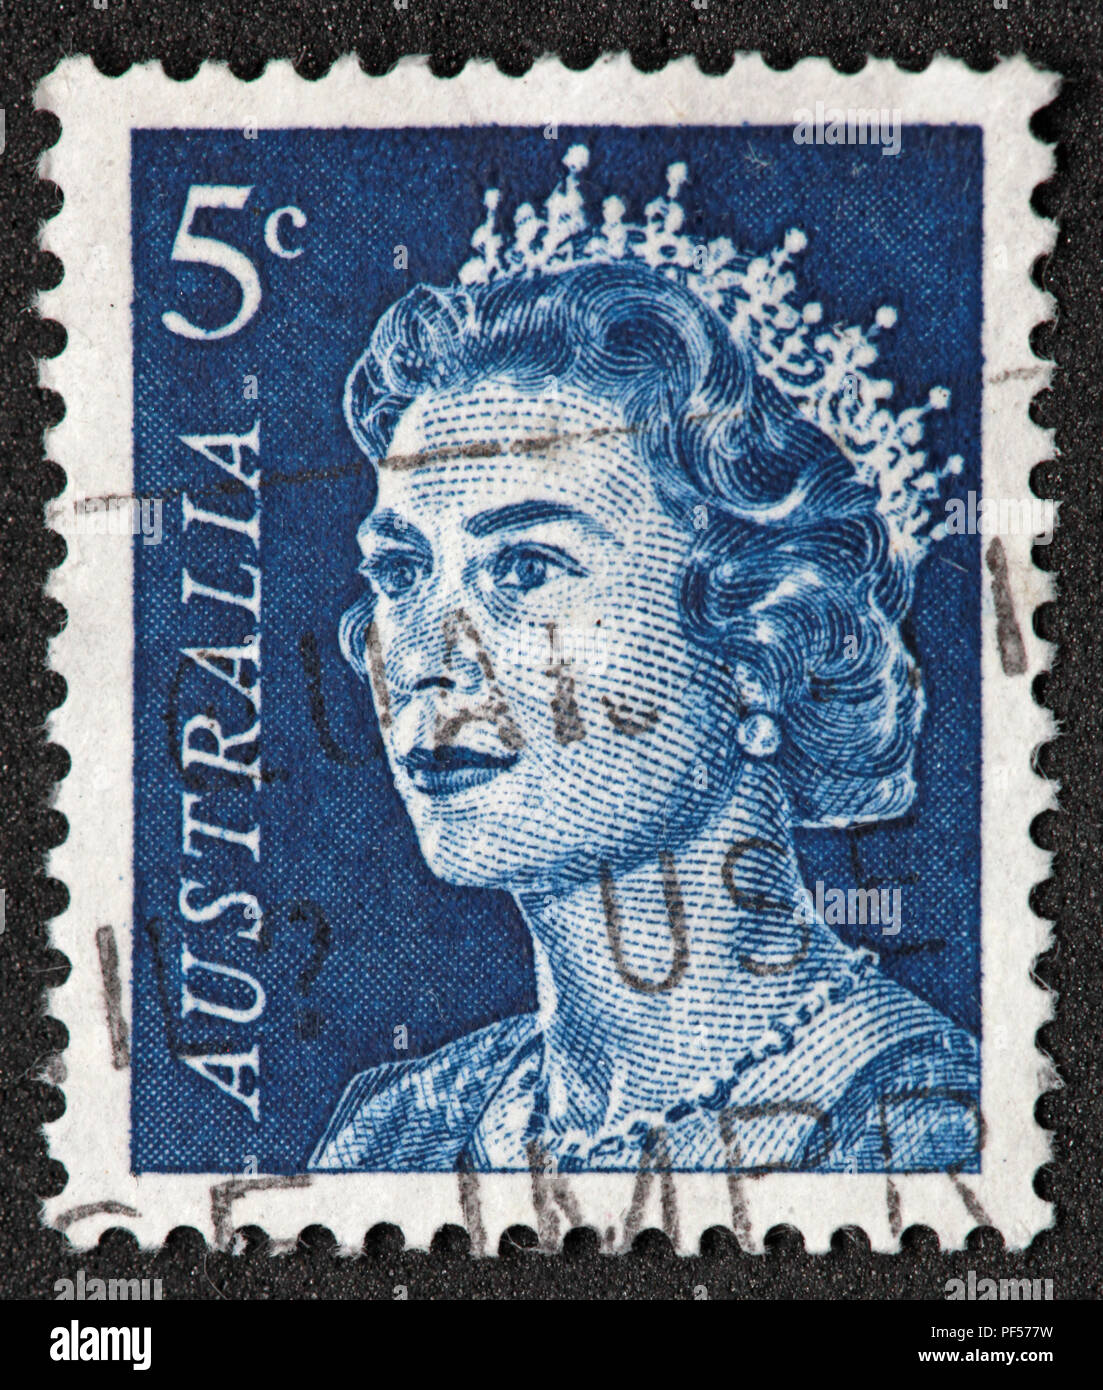 Used Australia 5c blue Stamp with Queen Elizabeth II - Stock Image